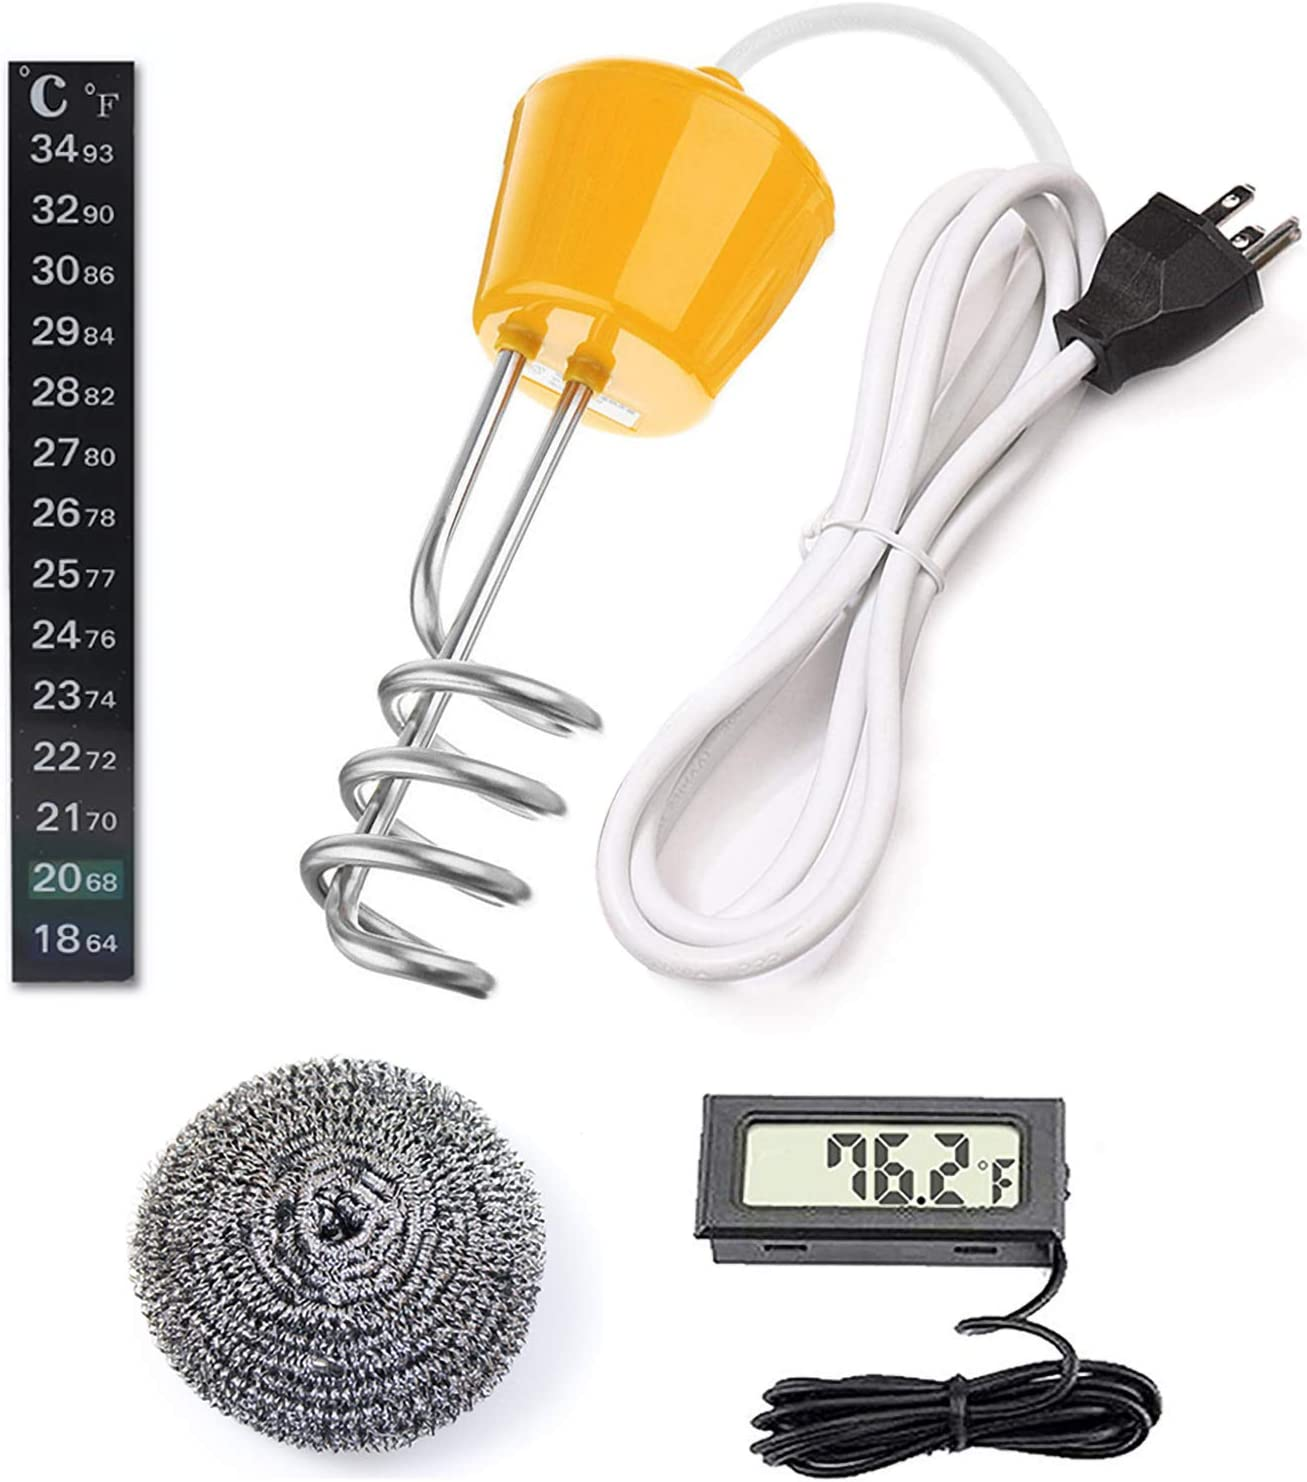 Amazon Com Andrimax Immersion Water Heater Portable Floating Electric Stainless Steel Heater With Digital Thermometer For Quick Heat 5 Gallons Of Water In Minutes U S Version Kitchen Dining